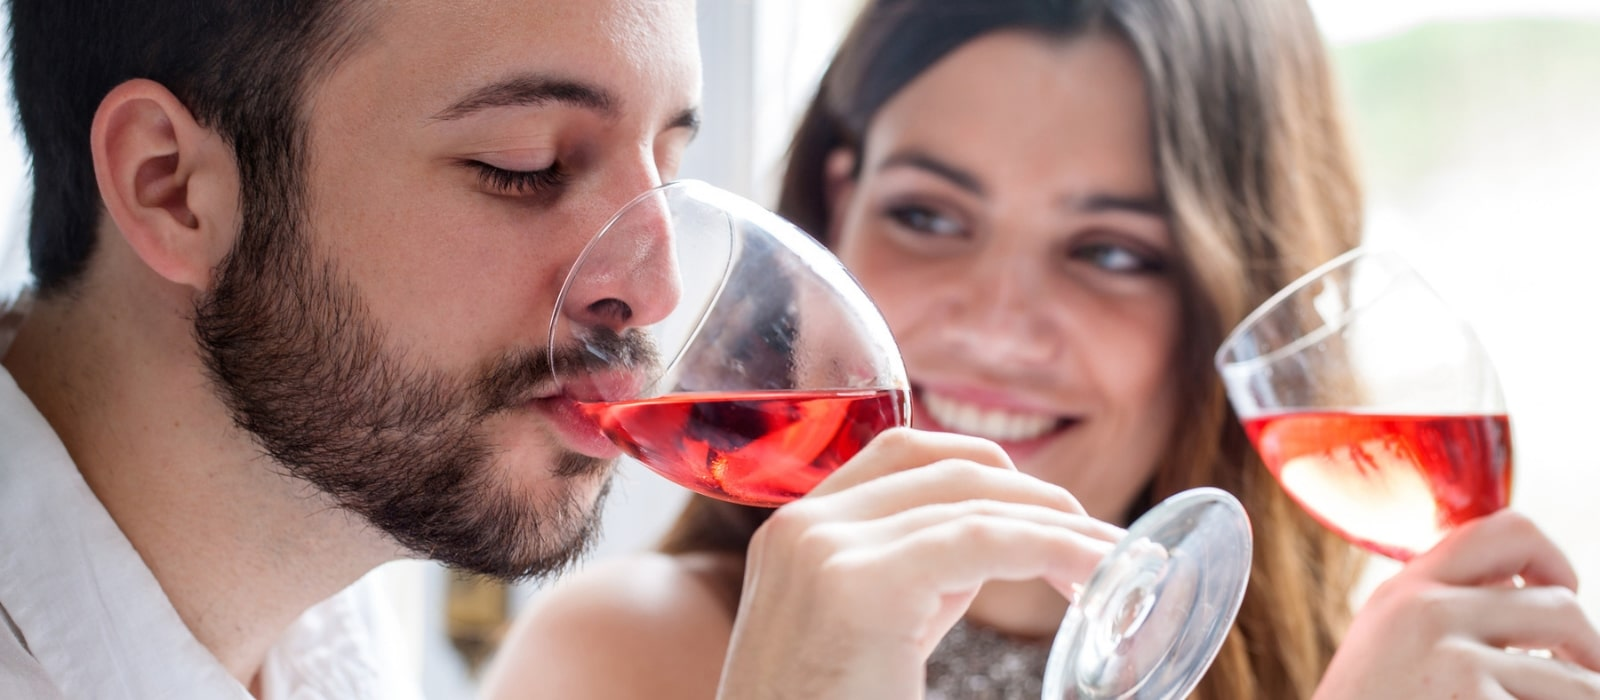 Where to Go Wine Tasting in Palm Springs| The Best Places to Go Wine Tasting in Palm Springs| Wine Tasting in Palm Springs| Reasons to Visit Palm Springs| Palm Springs Wineriers| Best Places to Drink Wine in Palm Springs| Wine Travel| #palmsprings #travel #winetravel #wine #winetasting